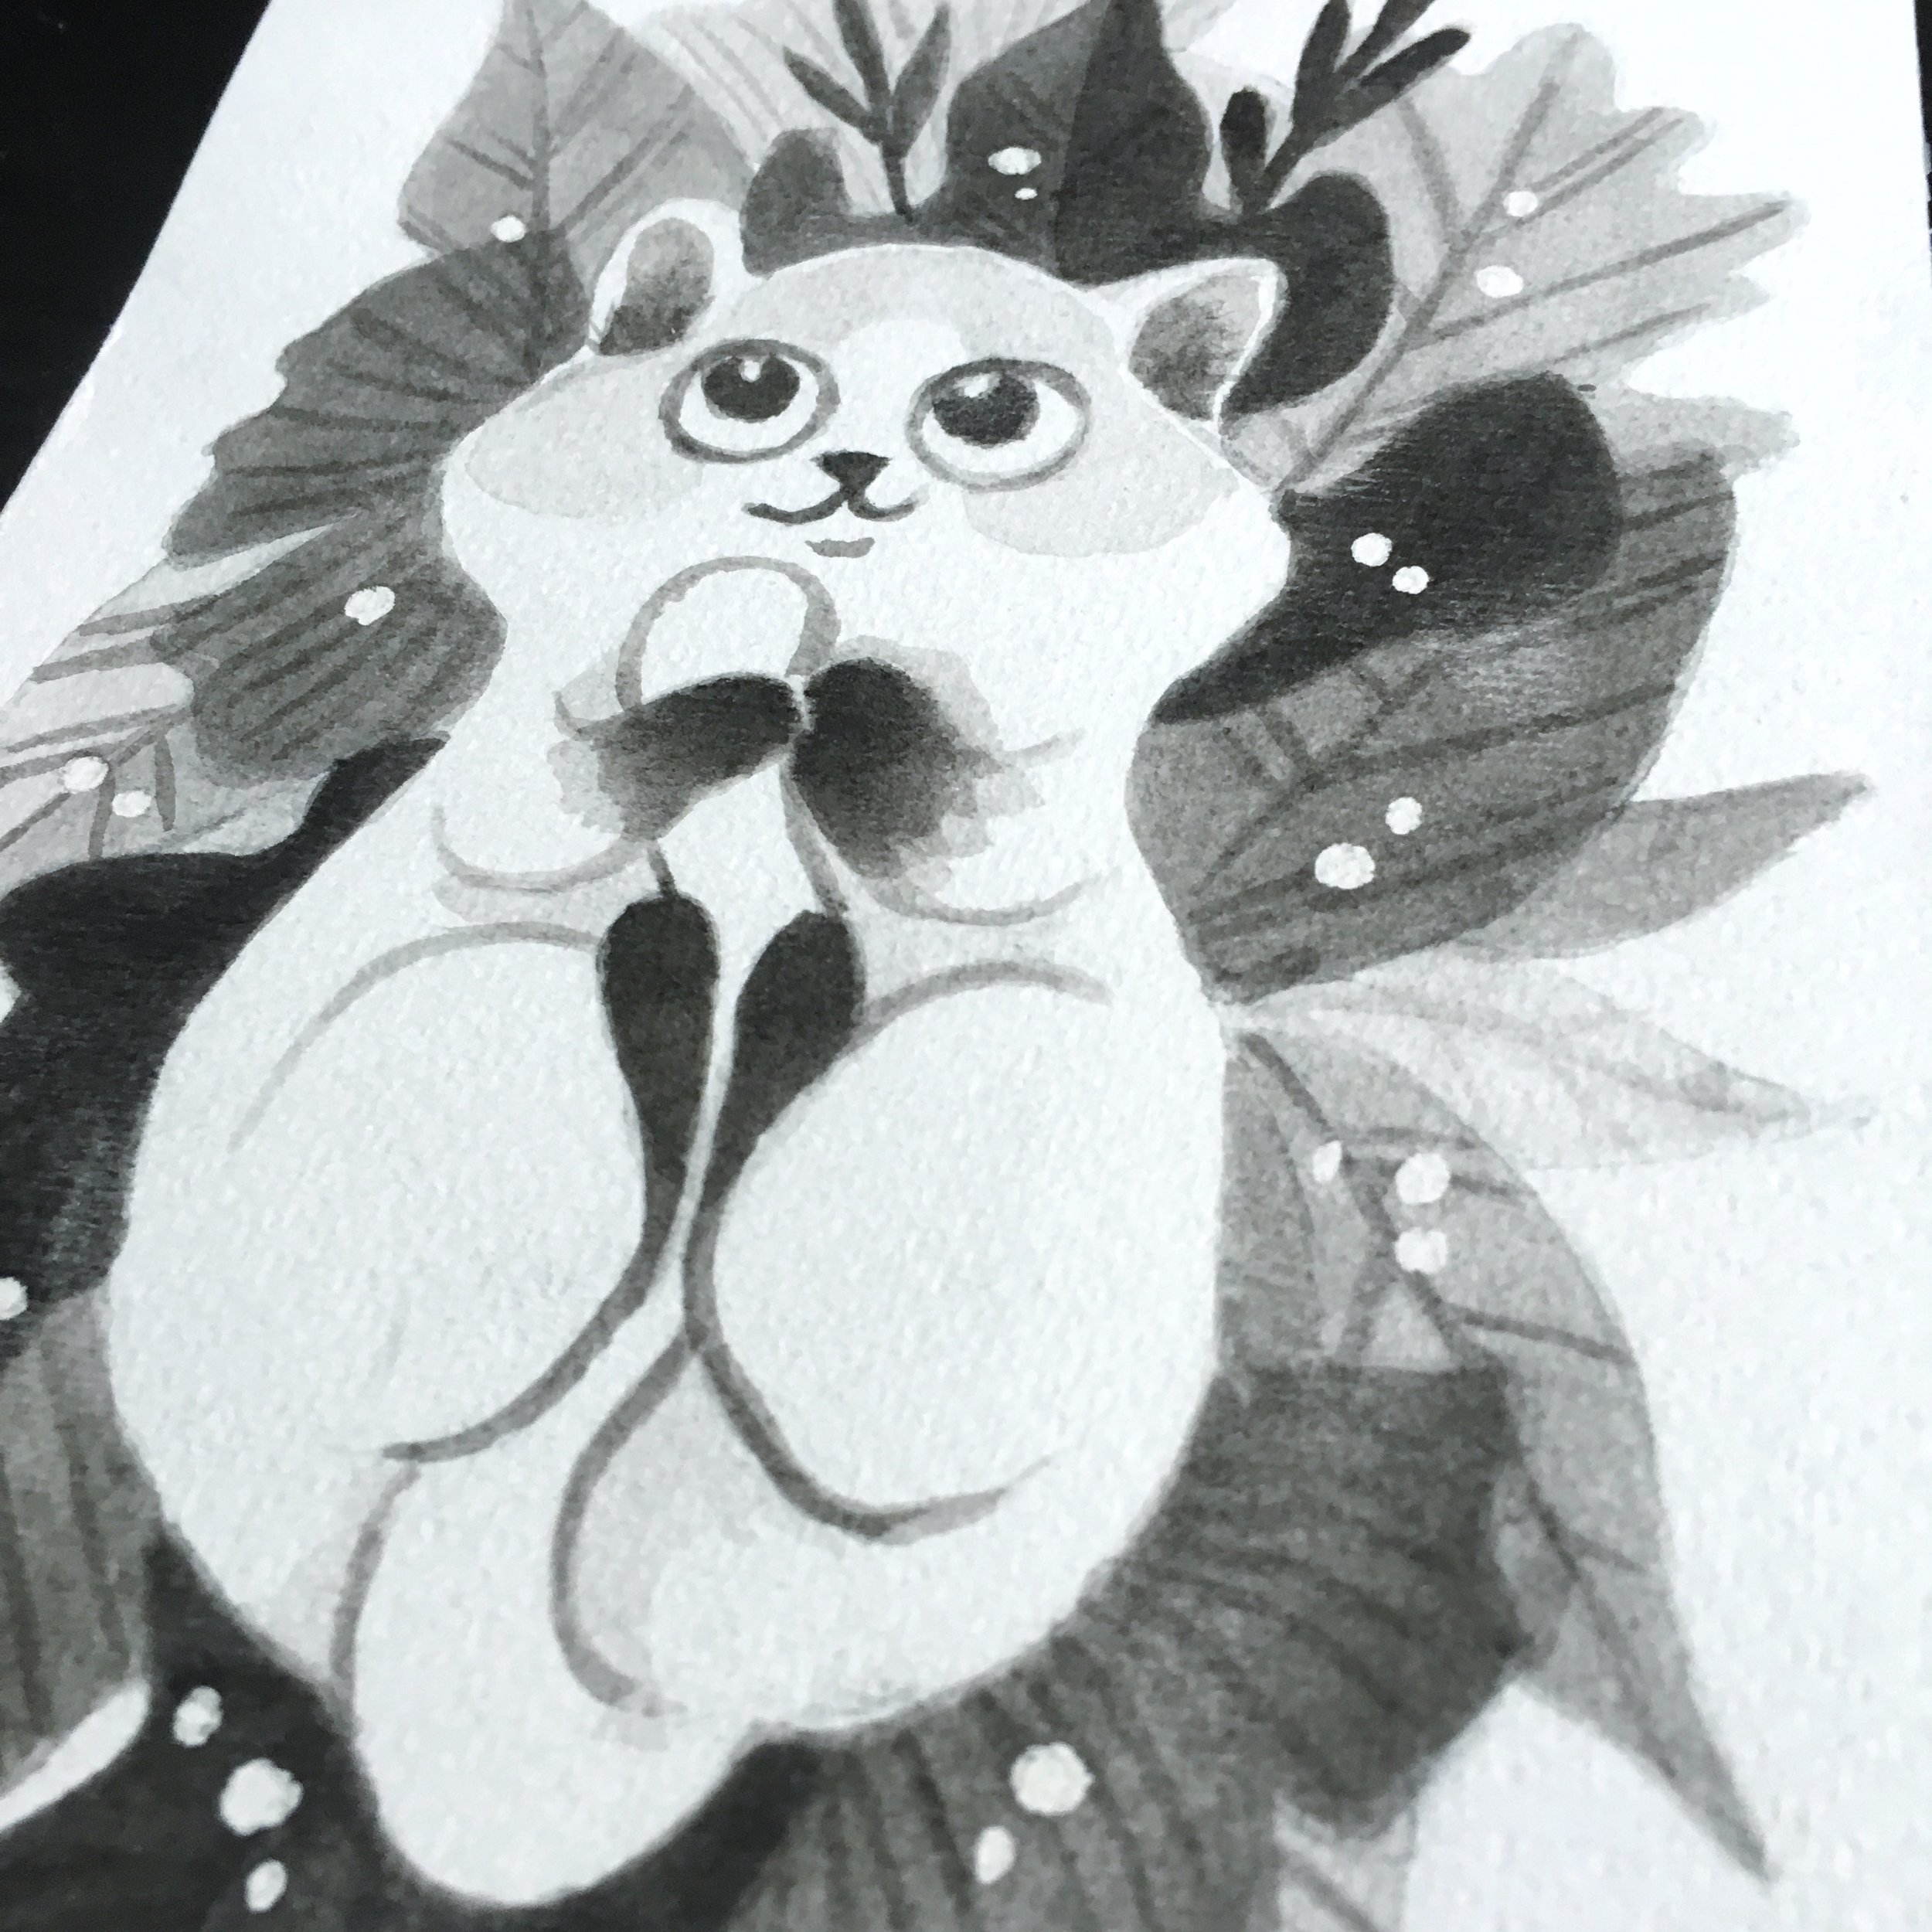 Whimsical Animal illustration in Black and white - Learn to create with just one colour